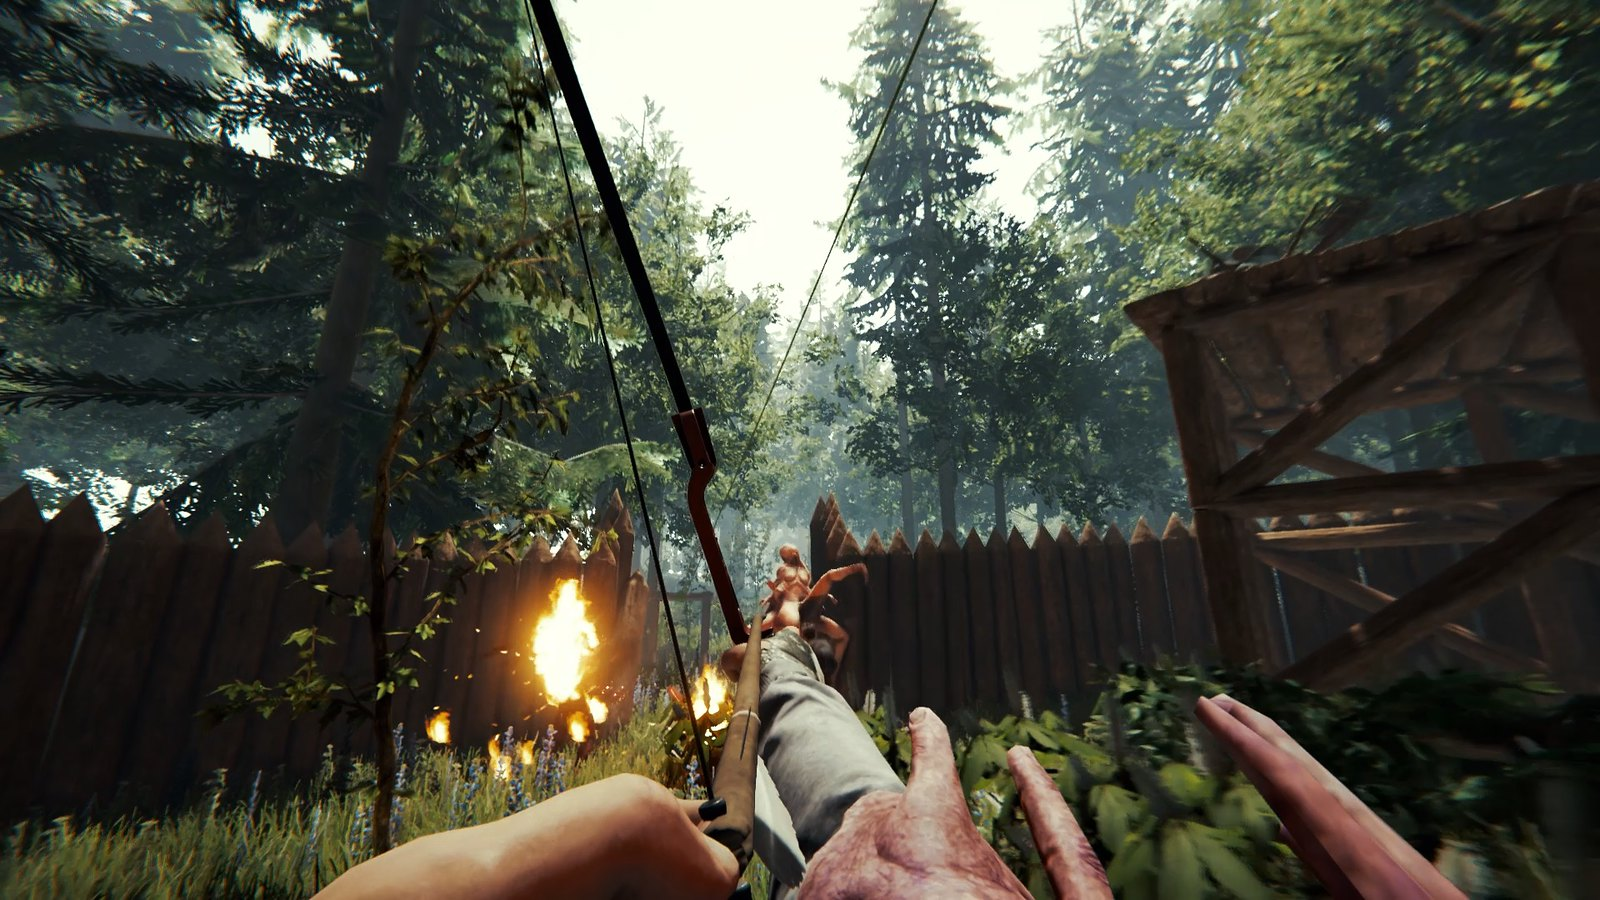 Acclaimed open-world survival game The Forest has a PS4